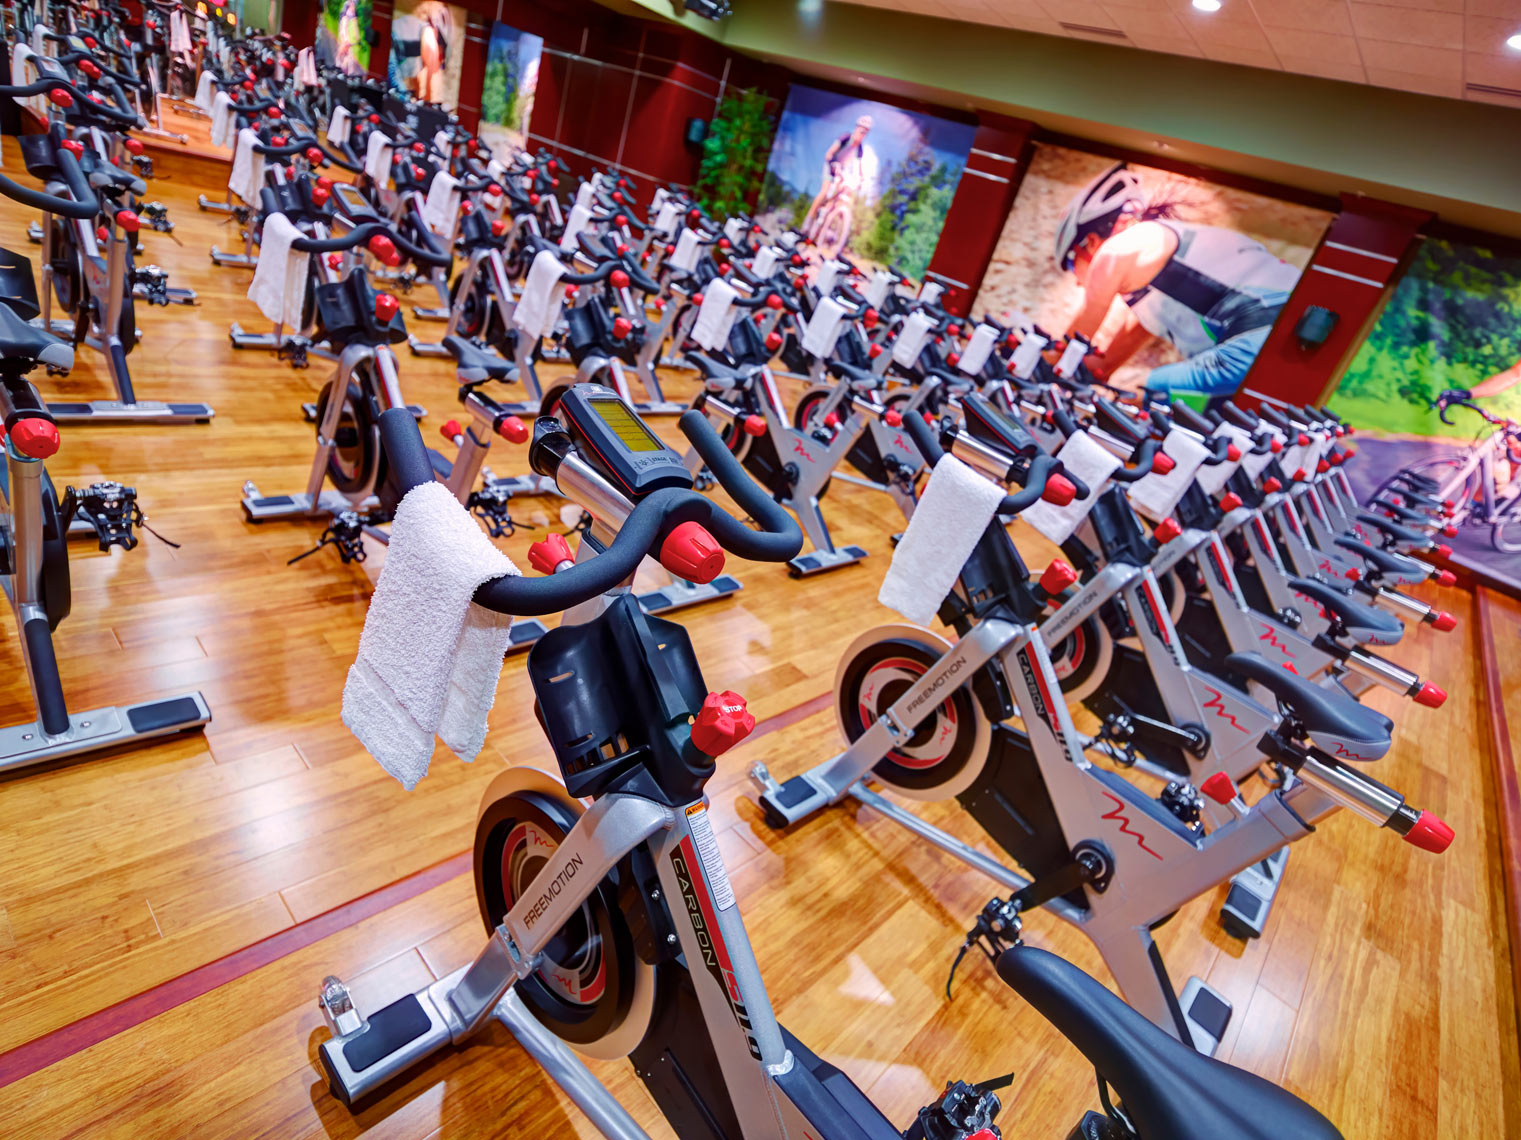 Lifetime Exercise equipment/Stationary bikes/location photo